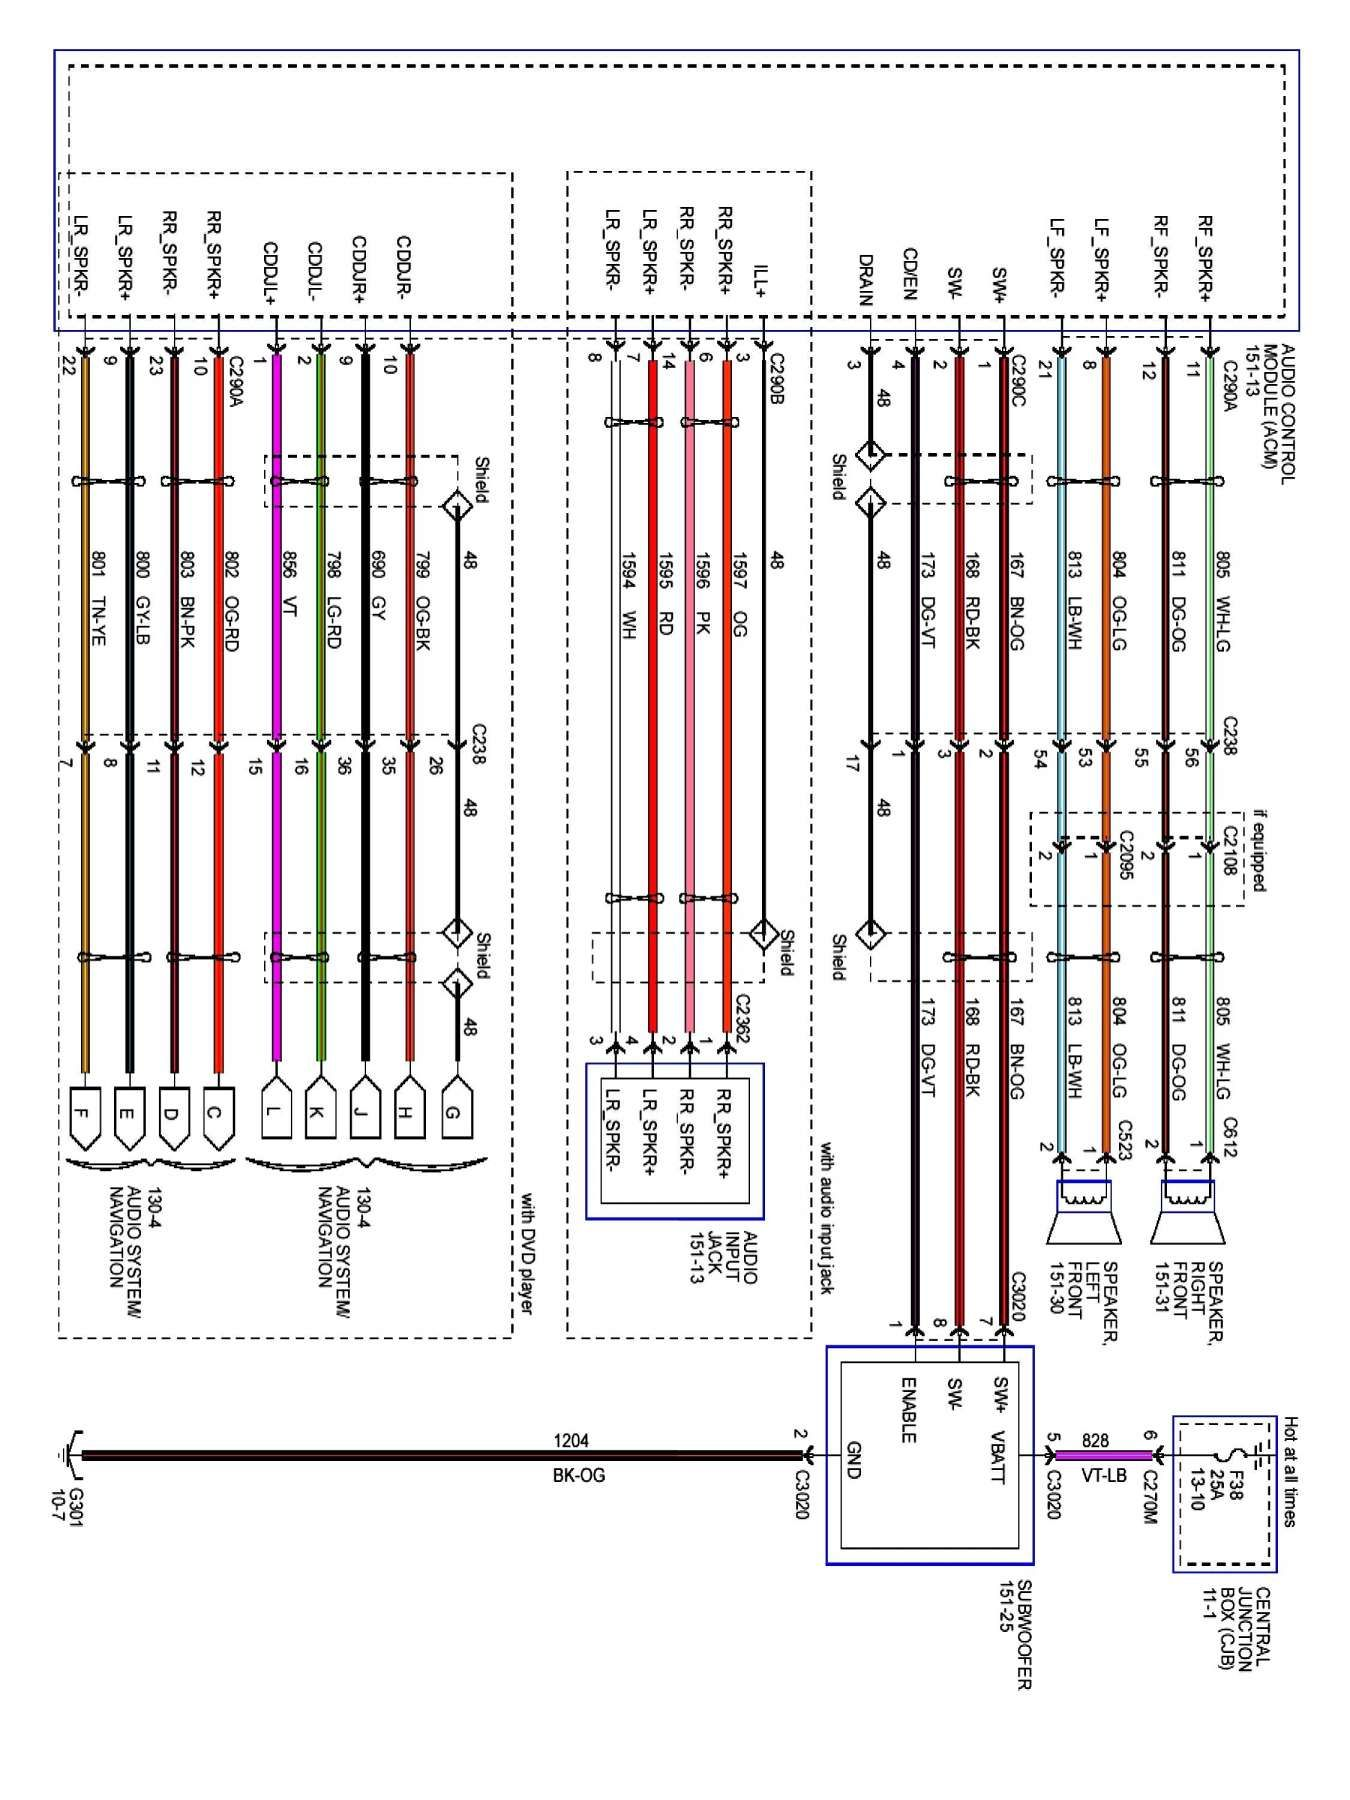 10 2004 Ford Explorer Car Stereo Wiring Diagram Car Diagram Wiringg Net Ford Expedition 2004 Ford F150 Diagram